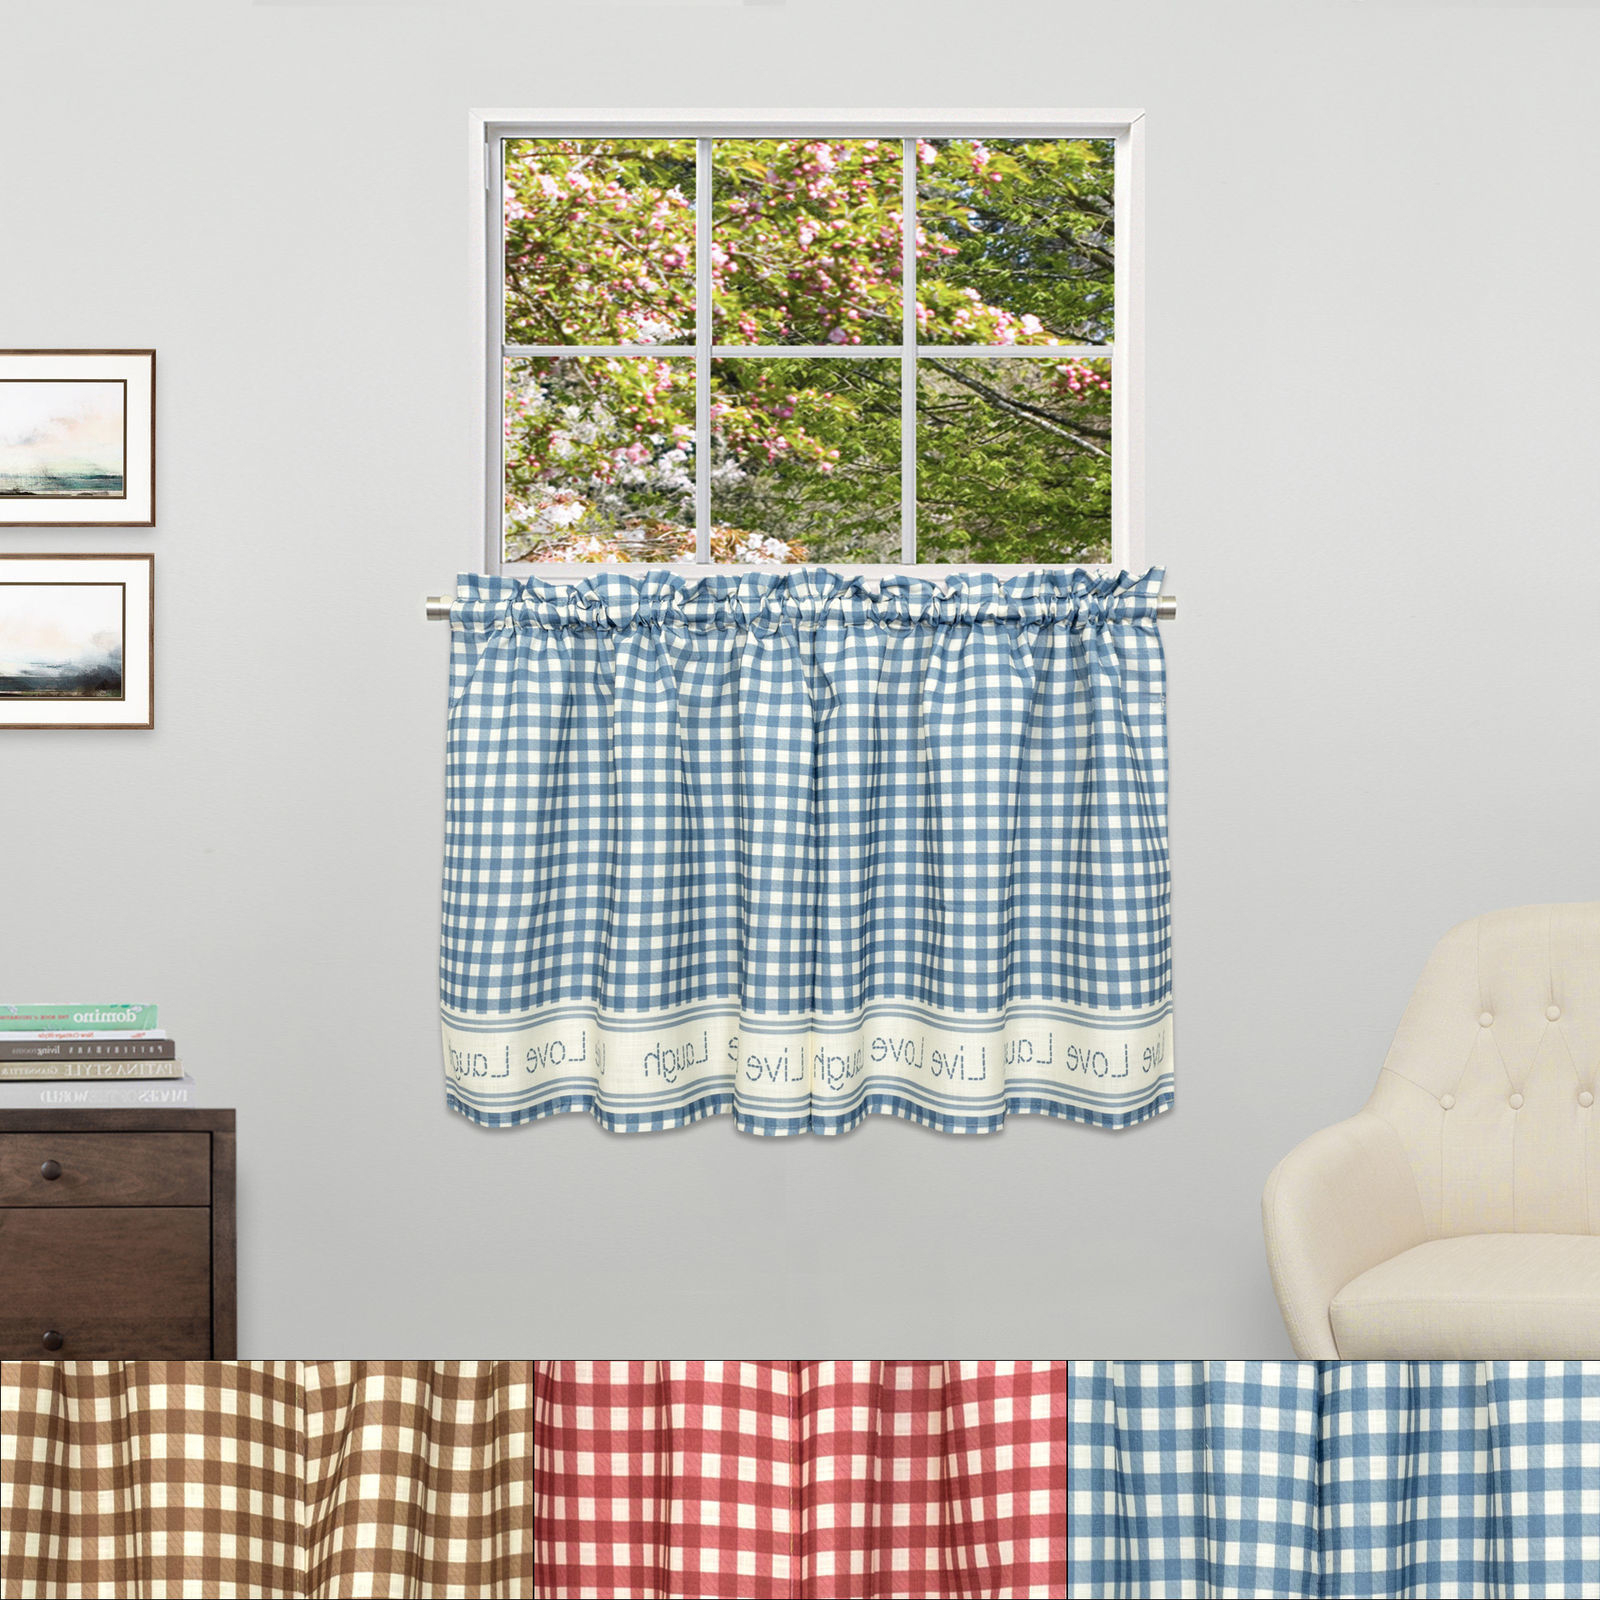 Popular Lorraine Home Fashions Curtain: 1 Customer Review And 183 Pertaining To Live, Love, Laugh Window Curtain Tier Pair And Valance Sets (View 20 of 20)